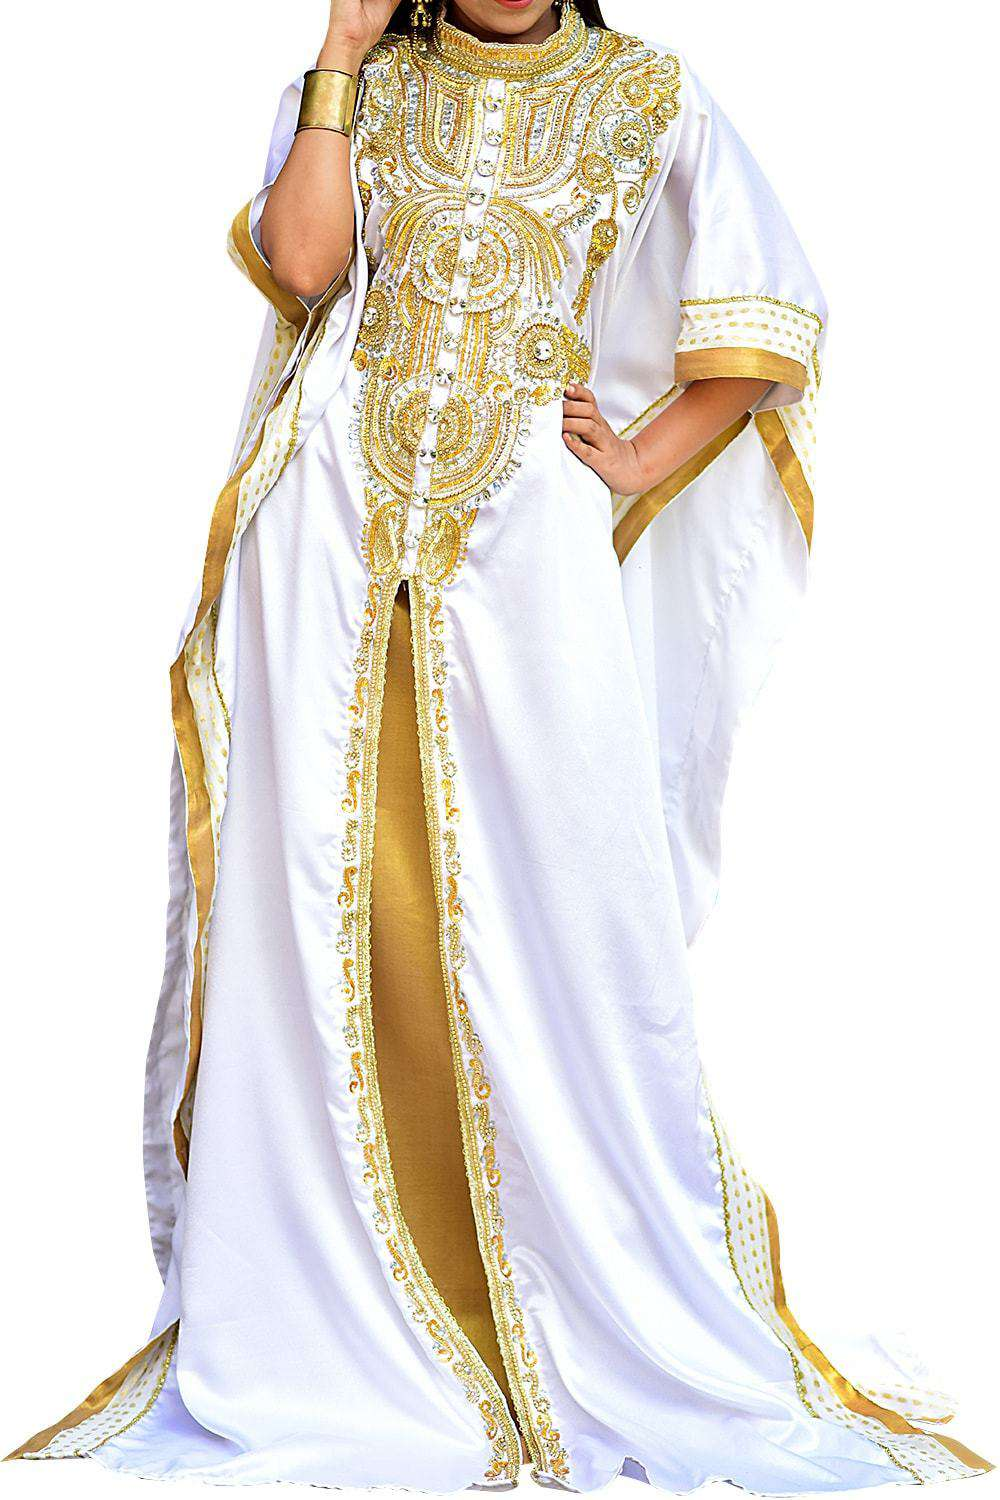 Dazzling White and Gold Color Fashionable Kaftan - One Size